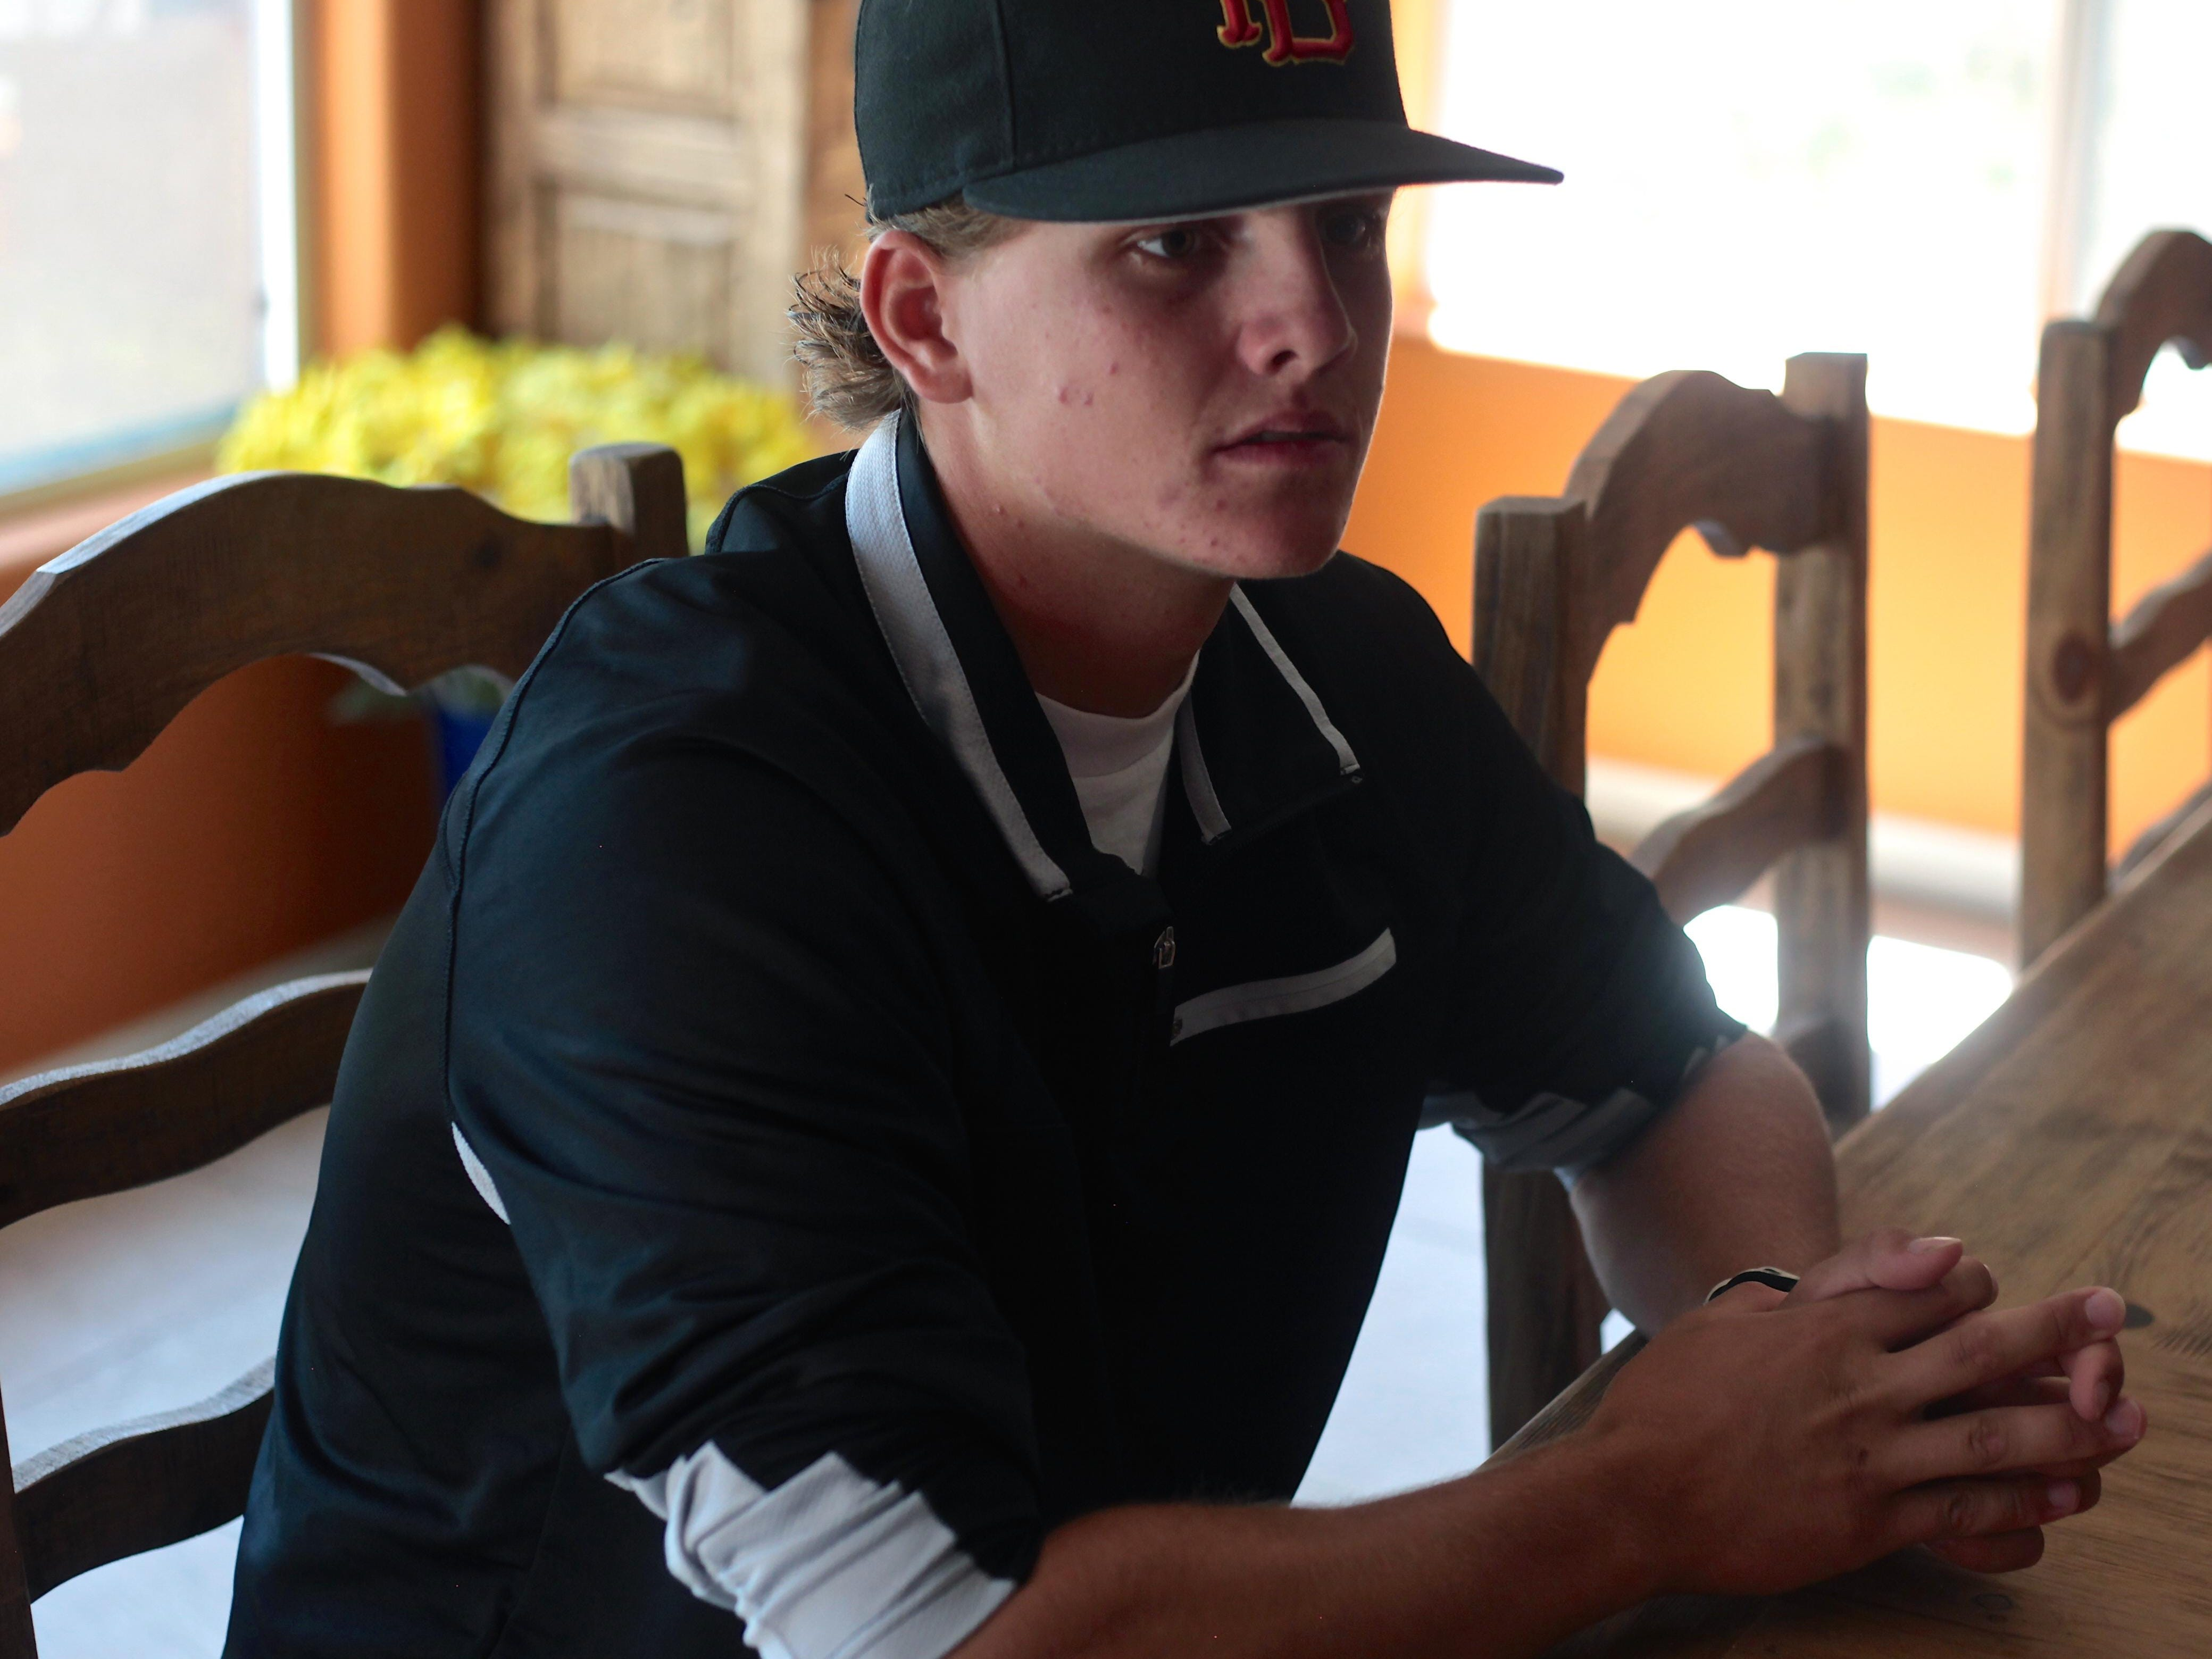 Travis Moniot, 17, could be selected in next week's 2015 MLB First-Year Player Draft after graduating from Palm Desert High School in May.